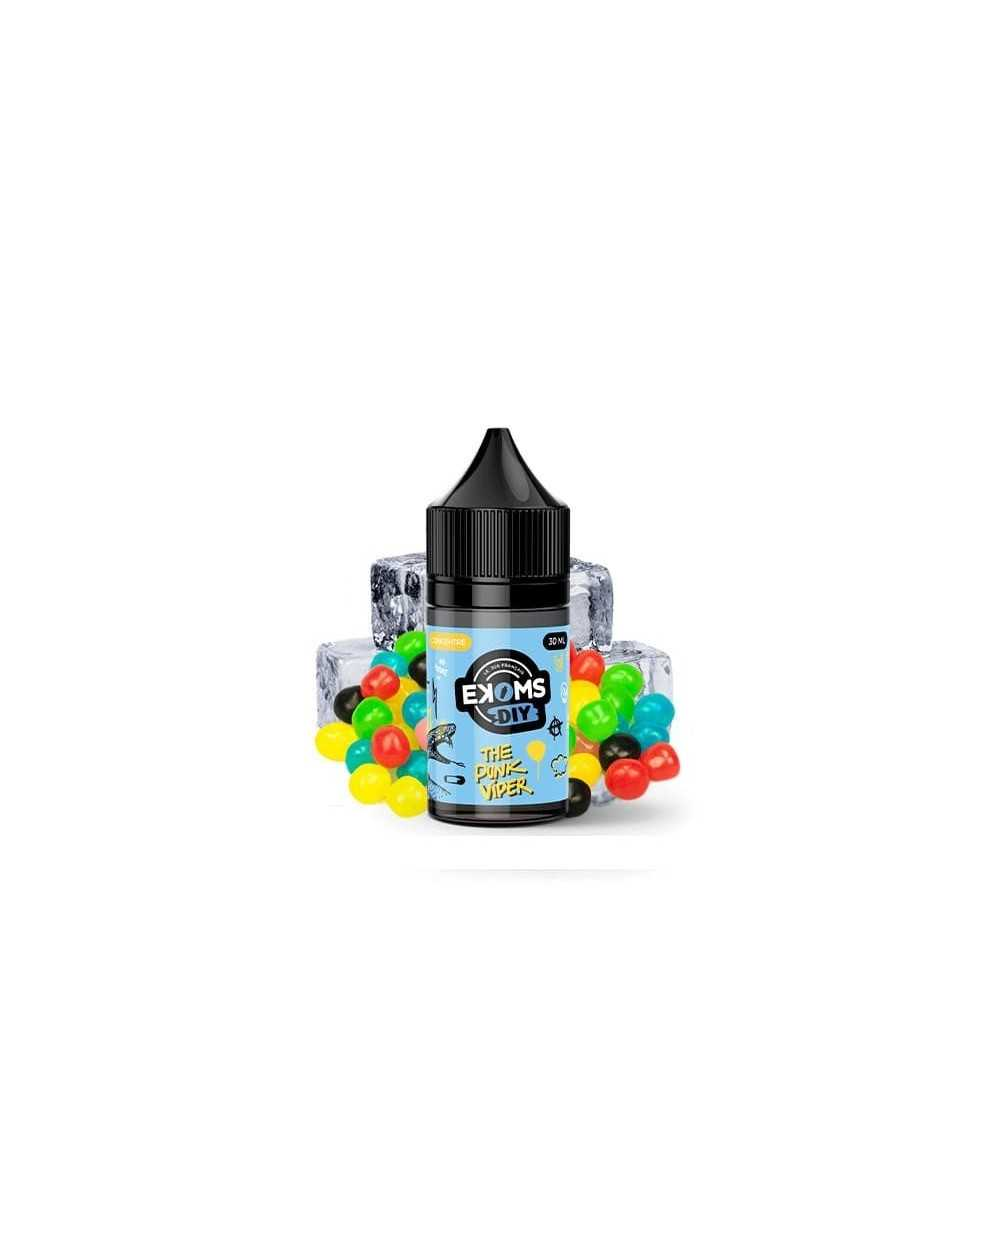 Concentrated aroma The Punk Viper 30ml - Ekoms-1